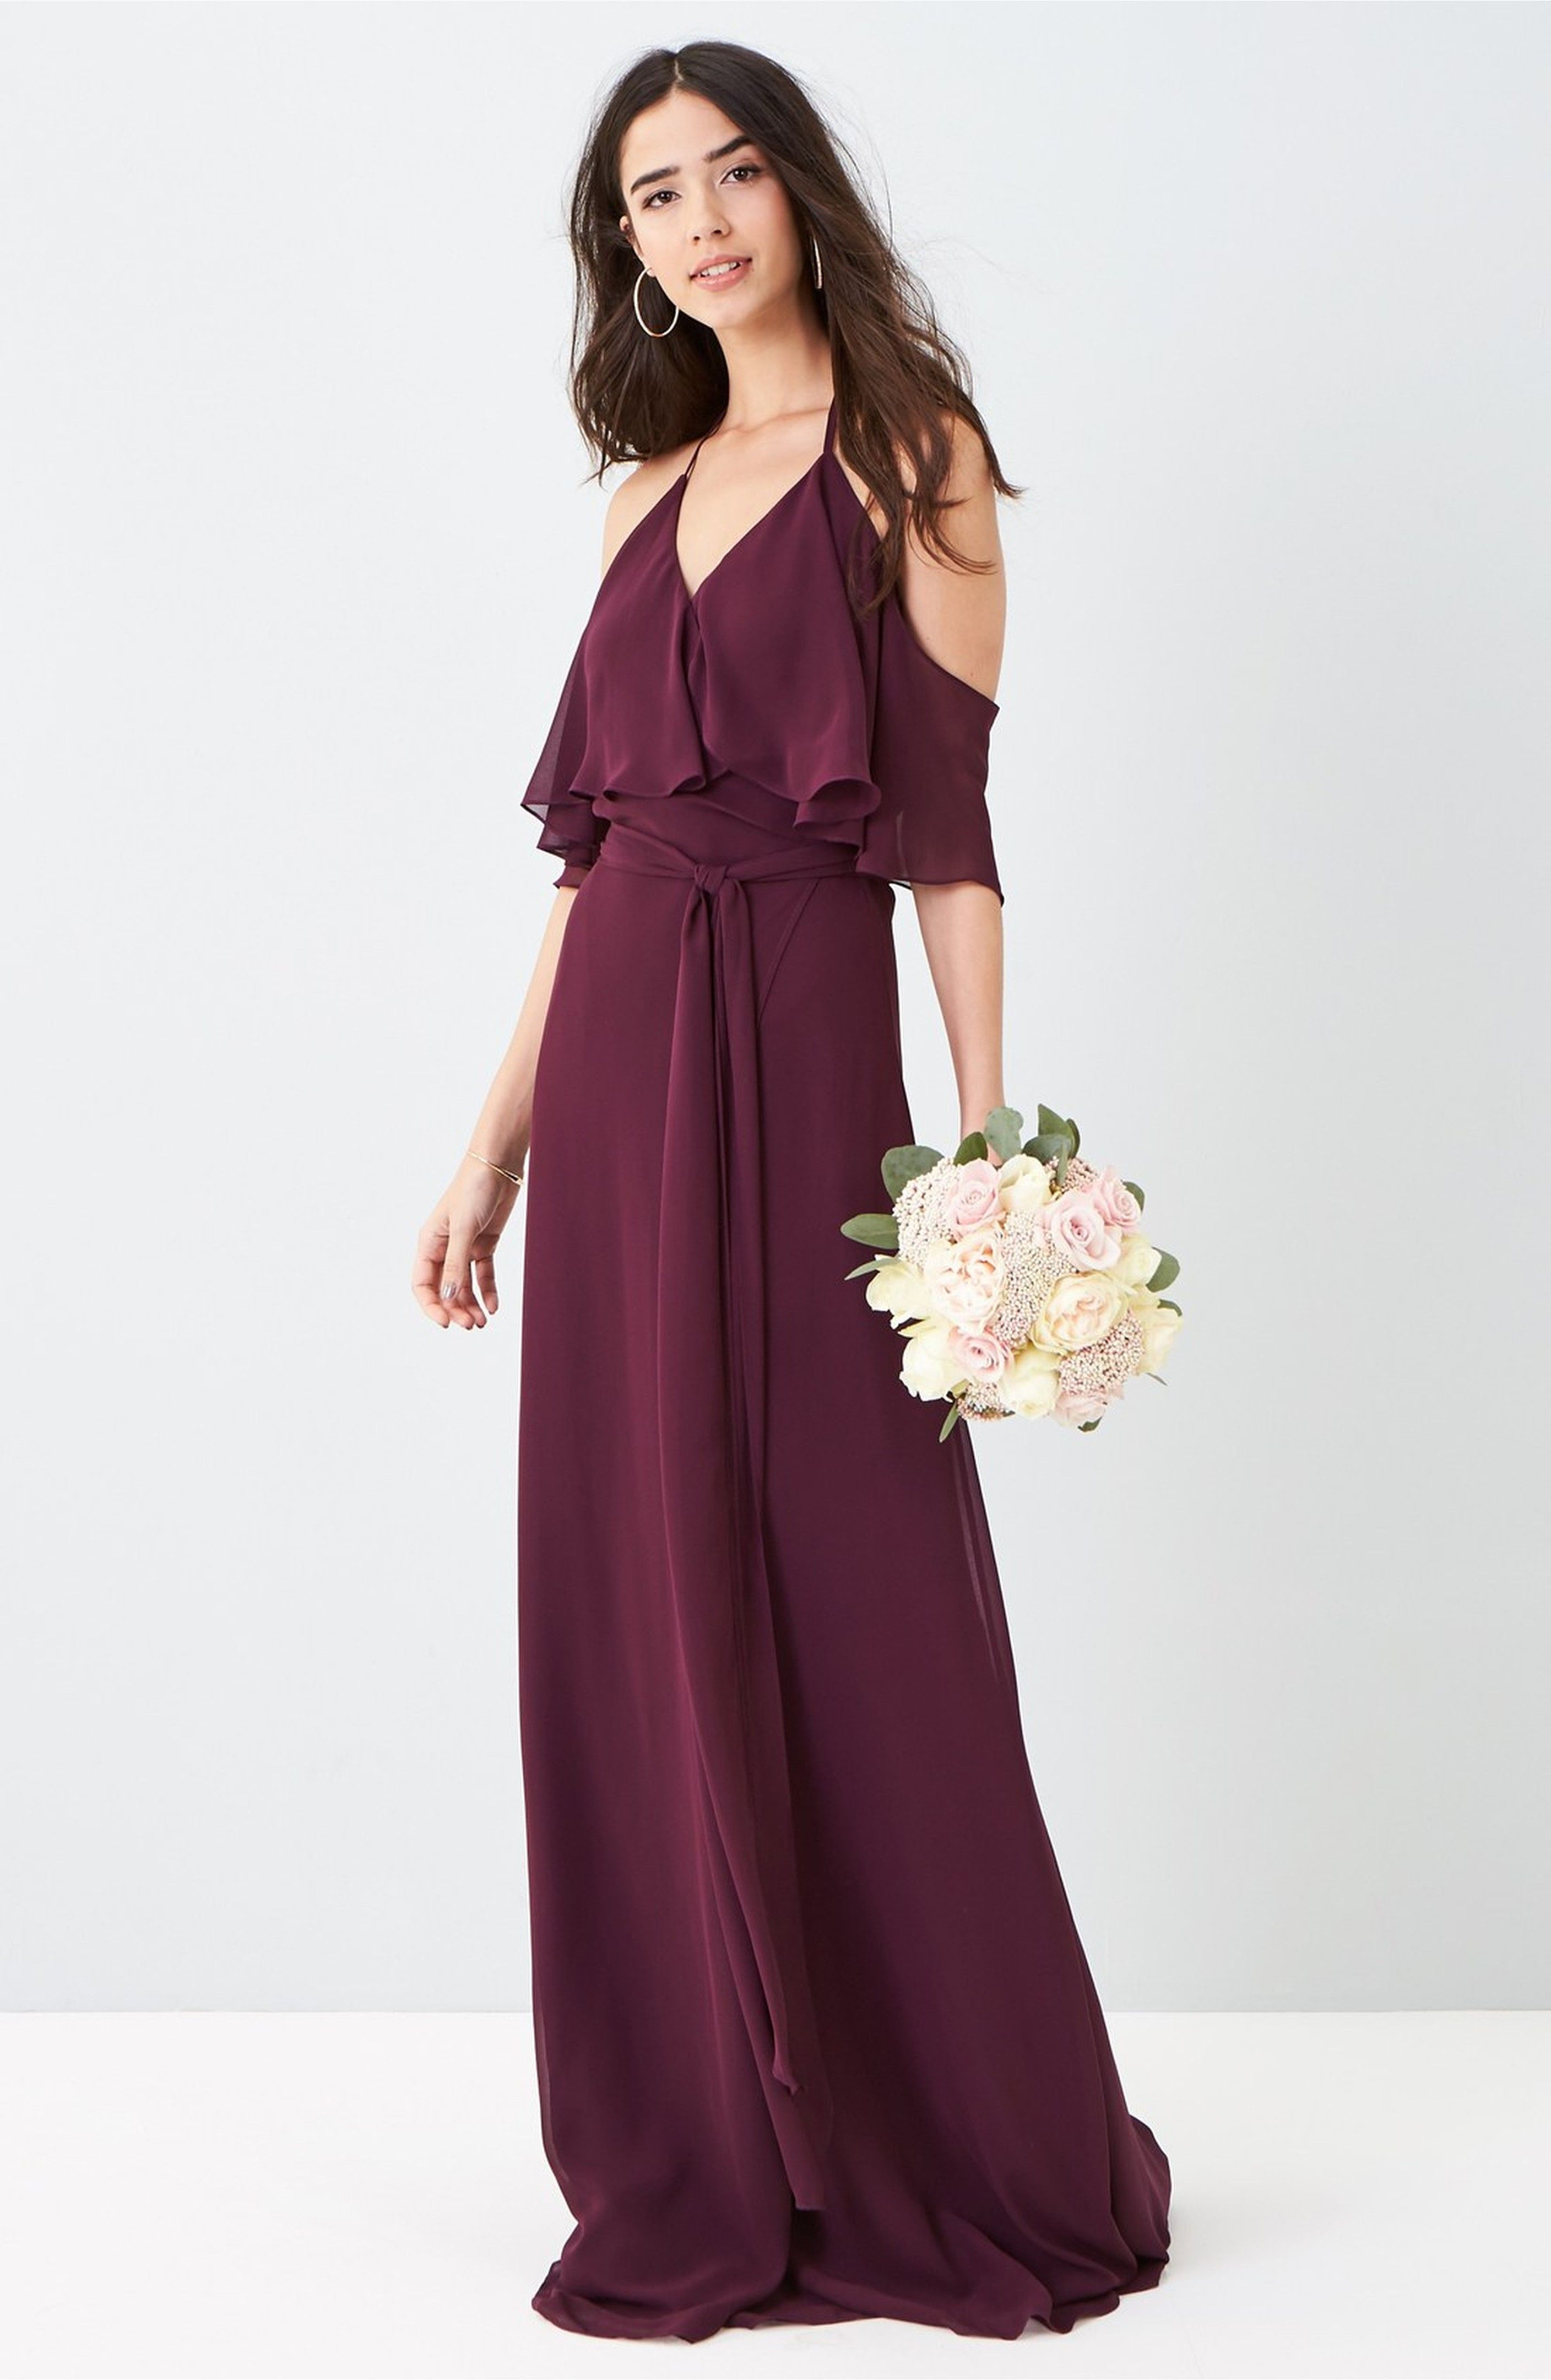 Burgundy bridesmaid dress with cold shouler ceremony by joanna burgundy bridesmaid dress with cold shouler ceremony by joanna august cold shoulder tie waist halter ombrellifo Images